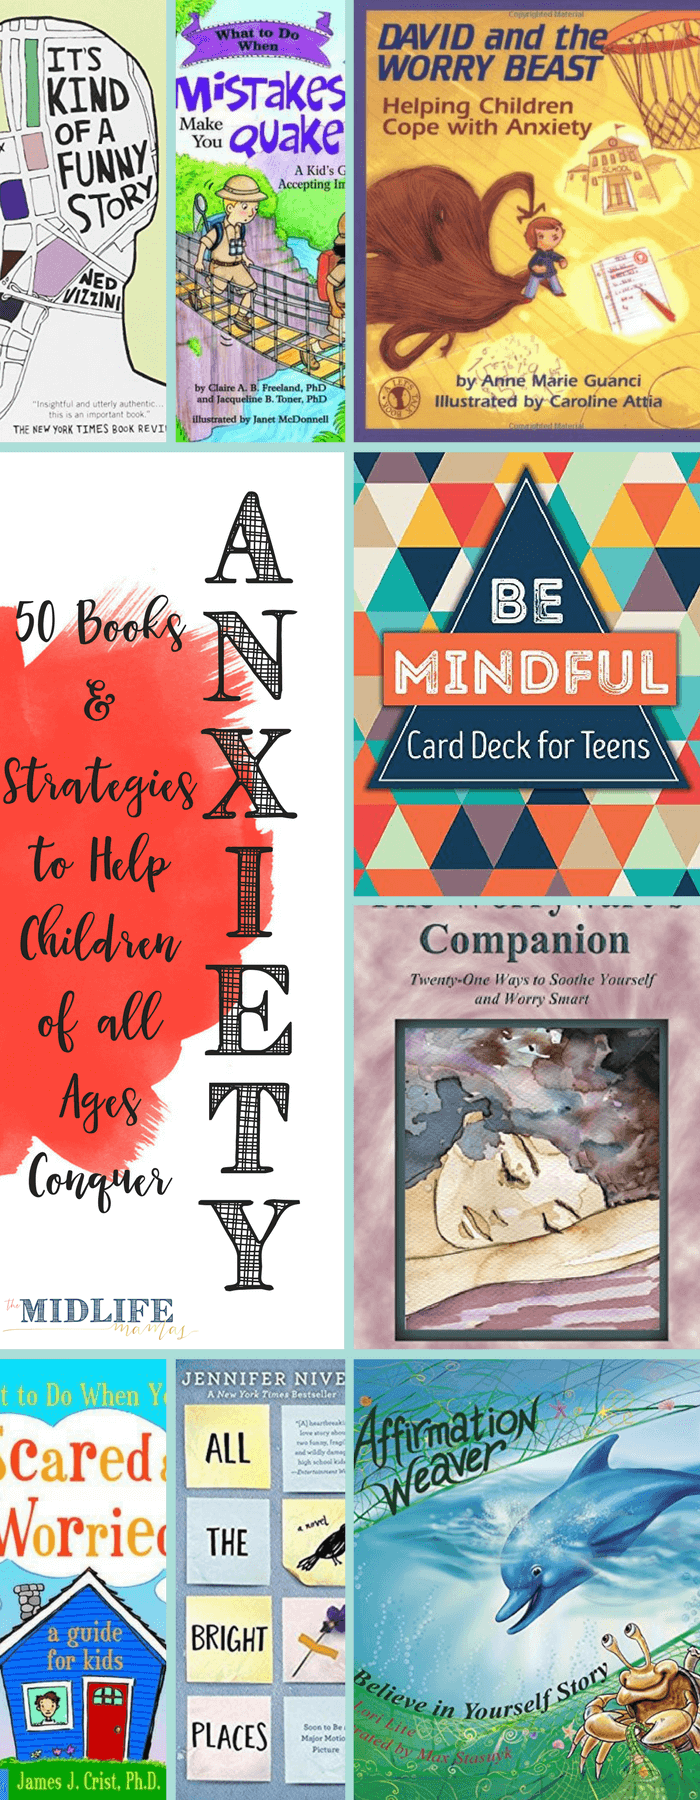 Stories for children about anxiety is the best list I've found with both stories and stratbestegies for every kid of every age with any kind of worries! www.themidlifemamas.com